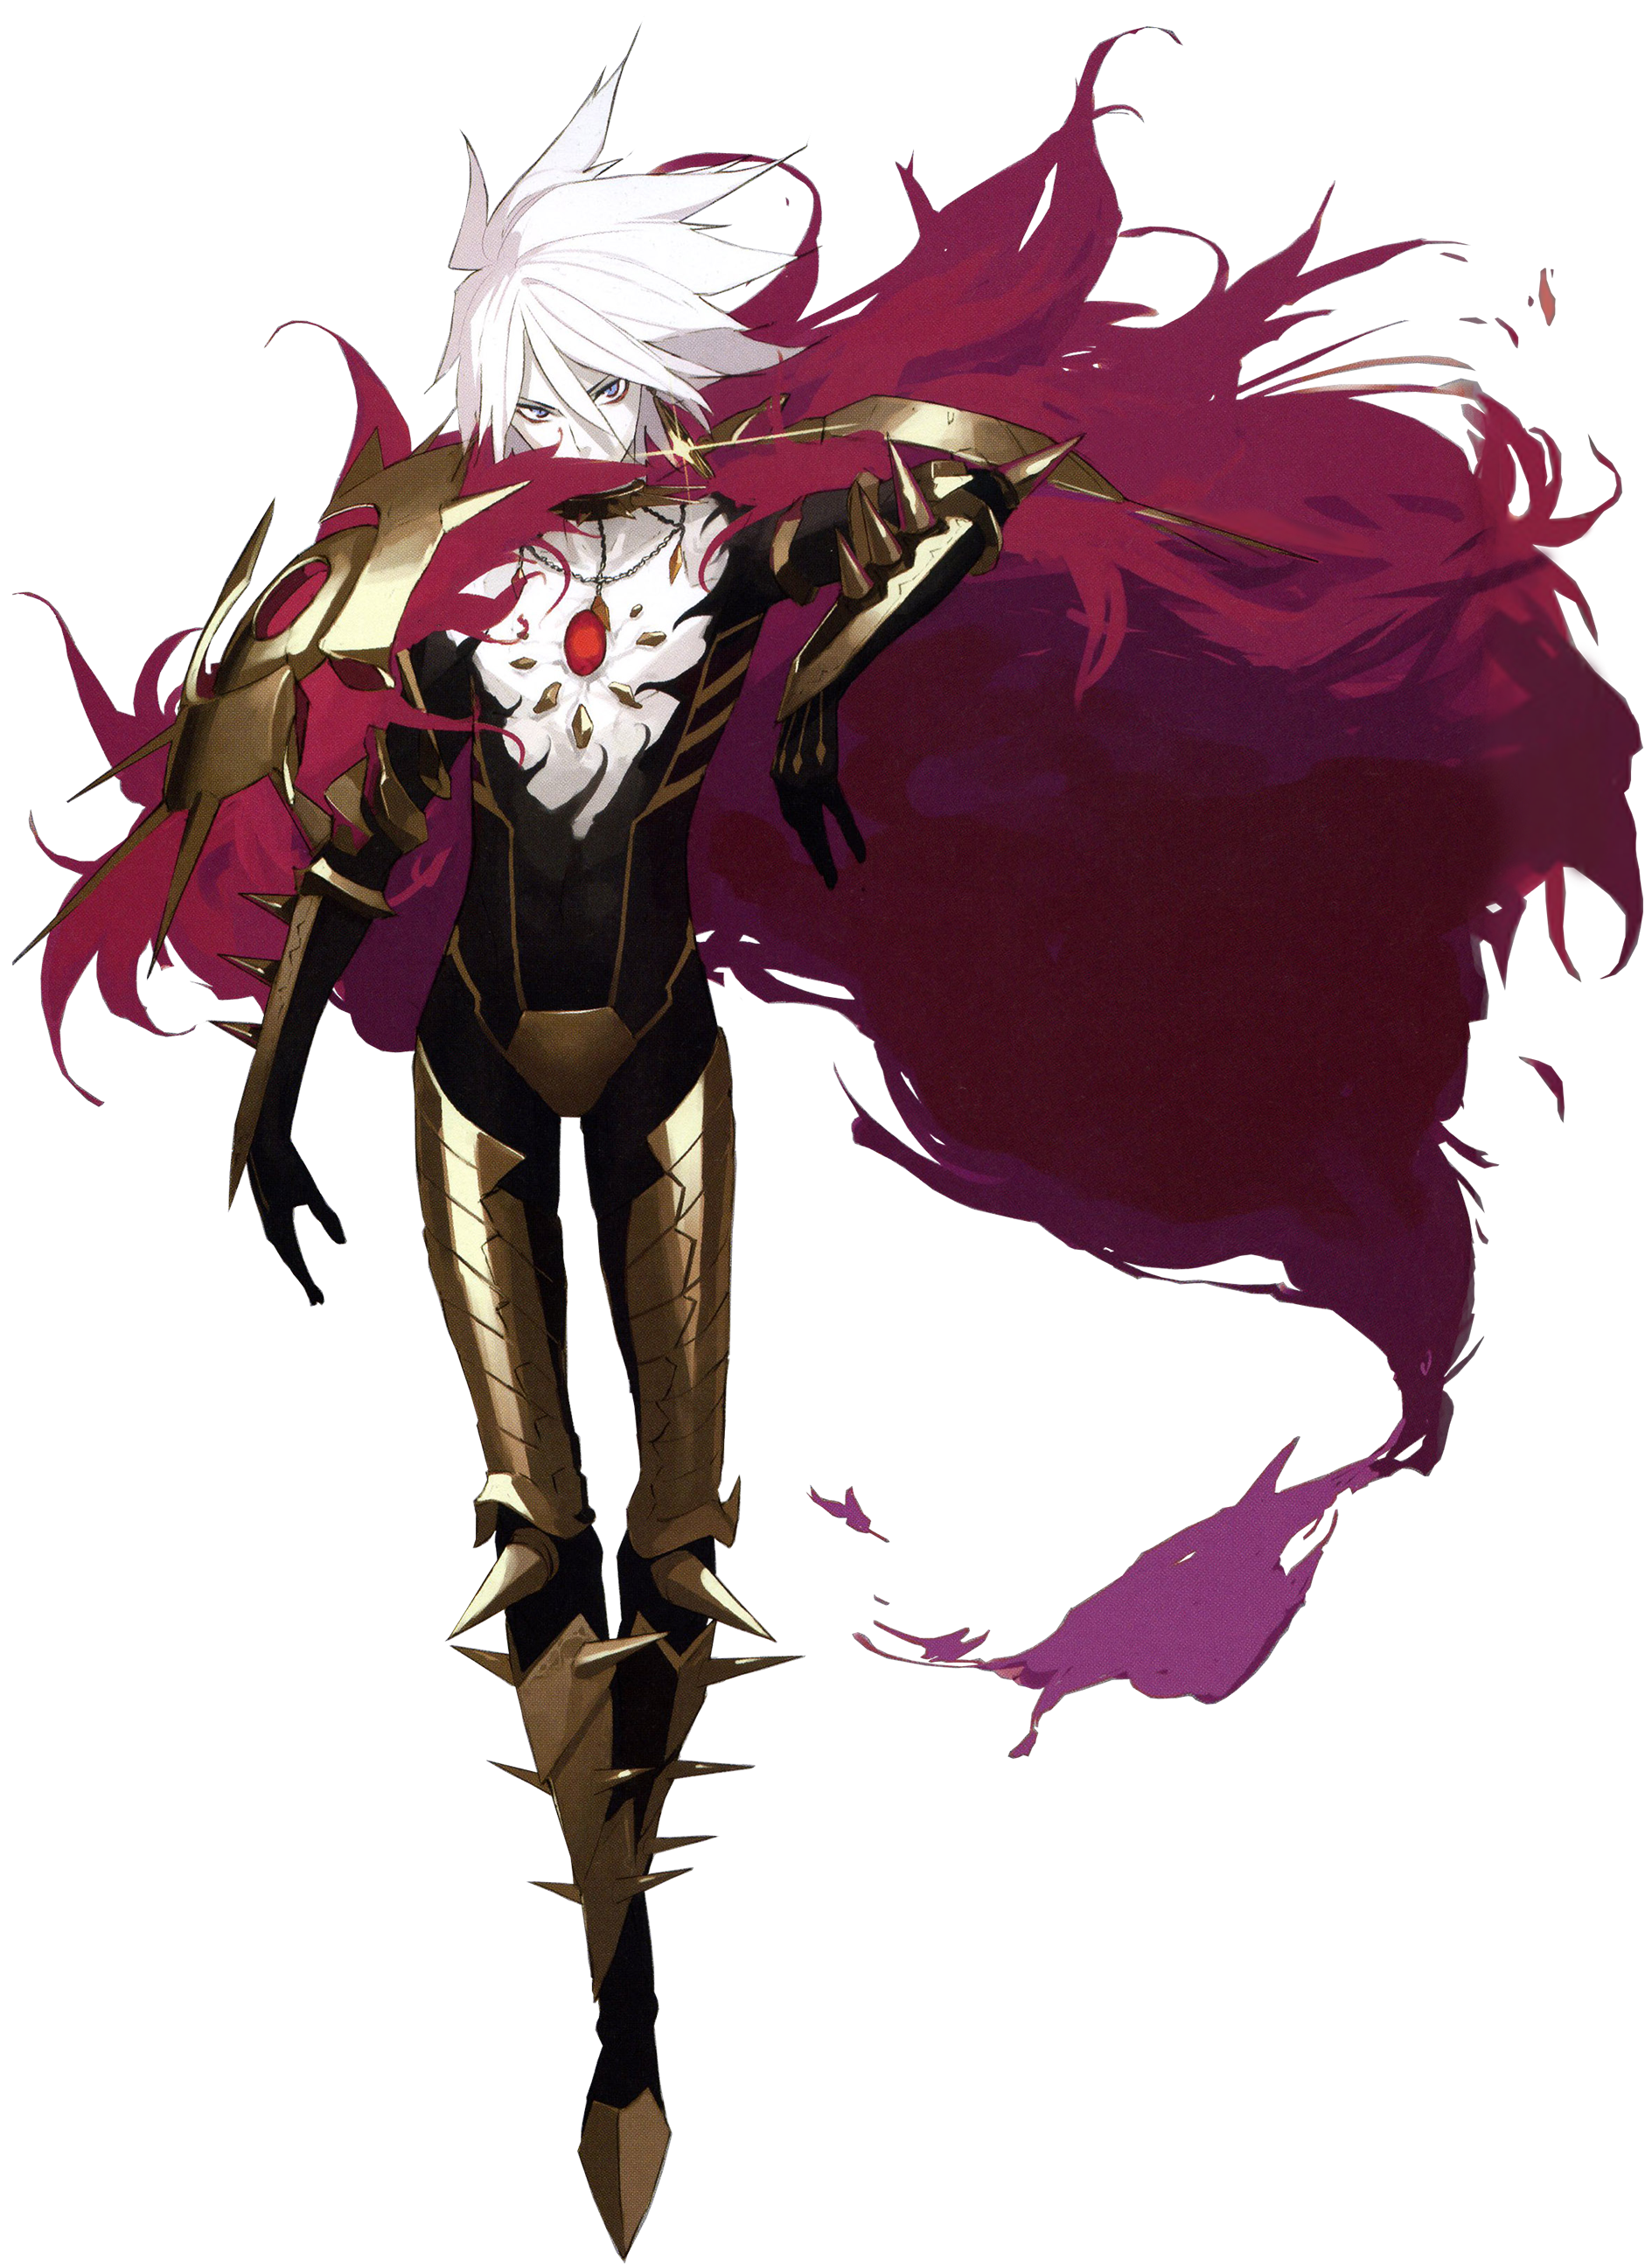 http://images.wikia.com/typemoon/images/2/24/Karna_i.png